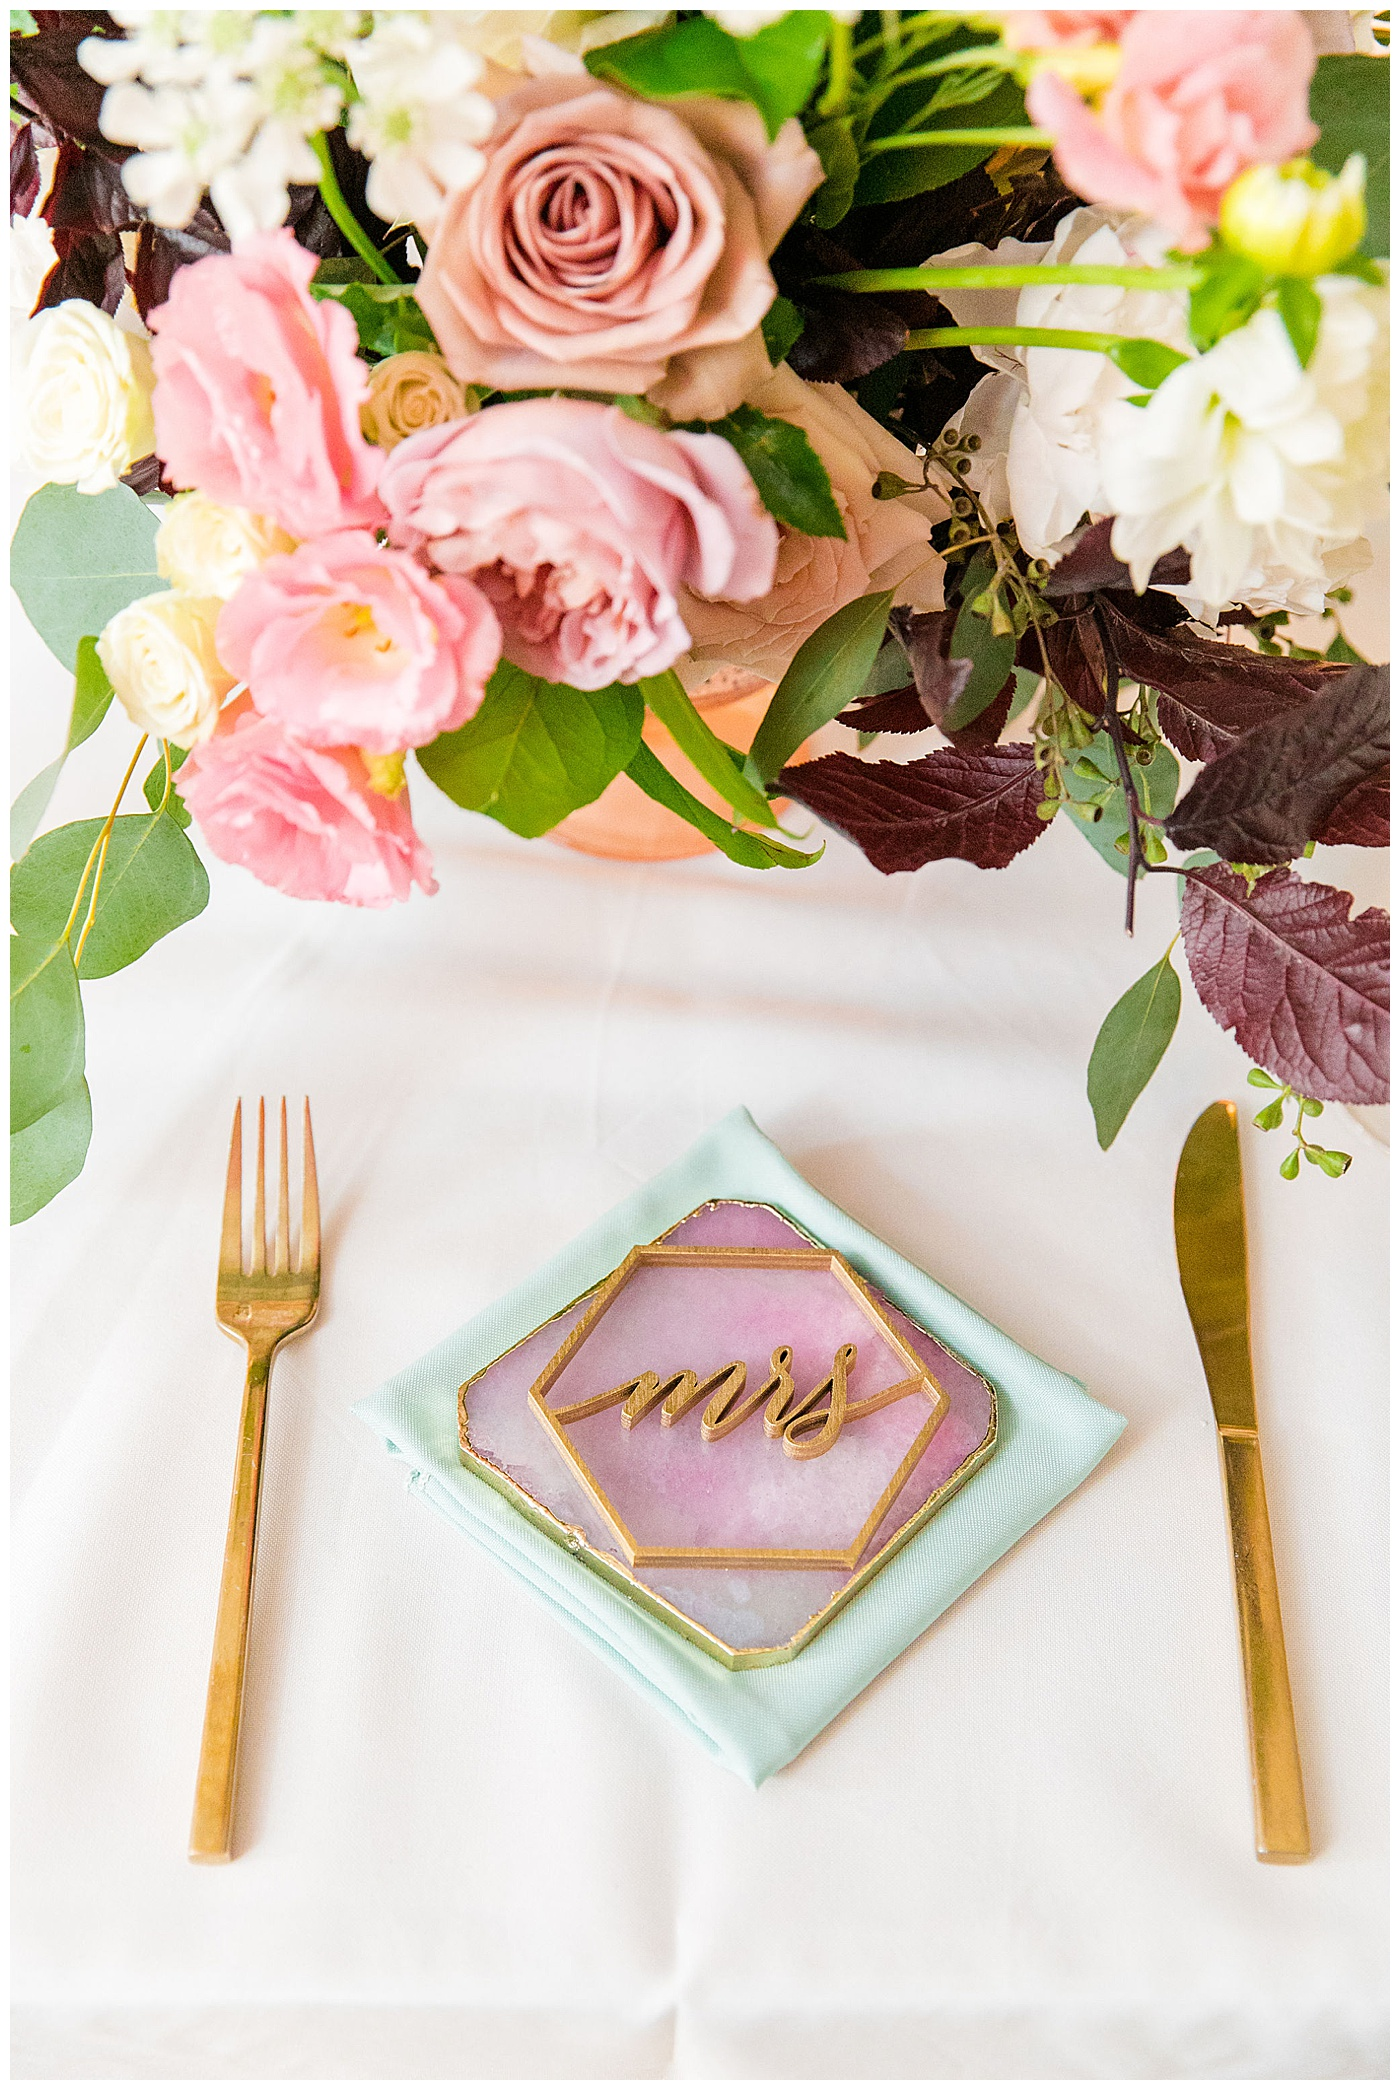 wedding geode theme place setting